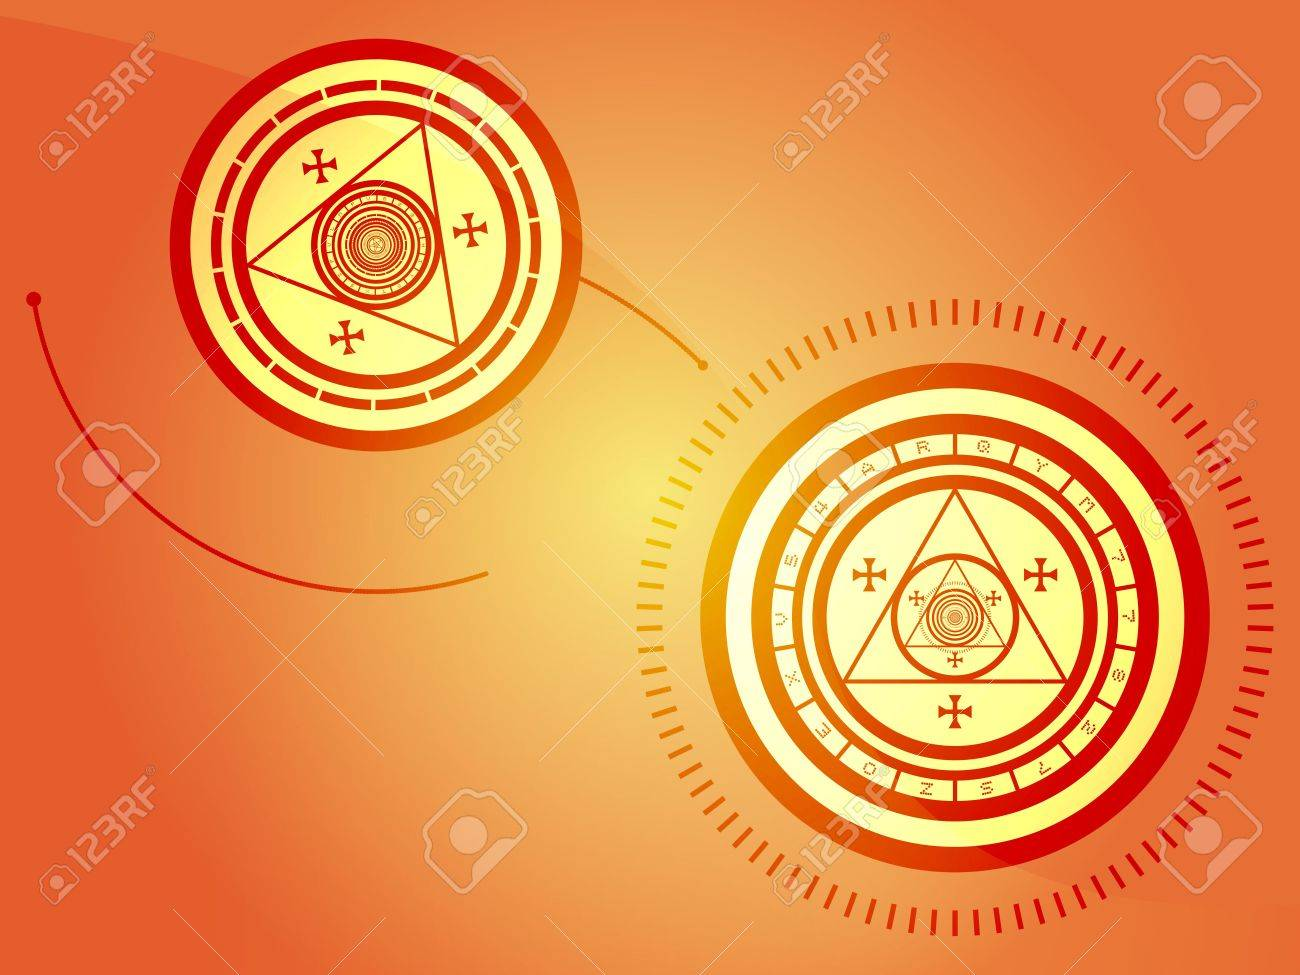 Wierd arcane symbols that look strange and occult Stock Photo - 4899201